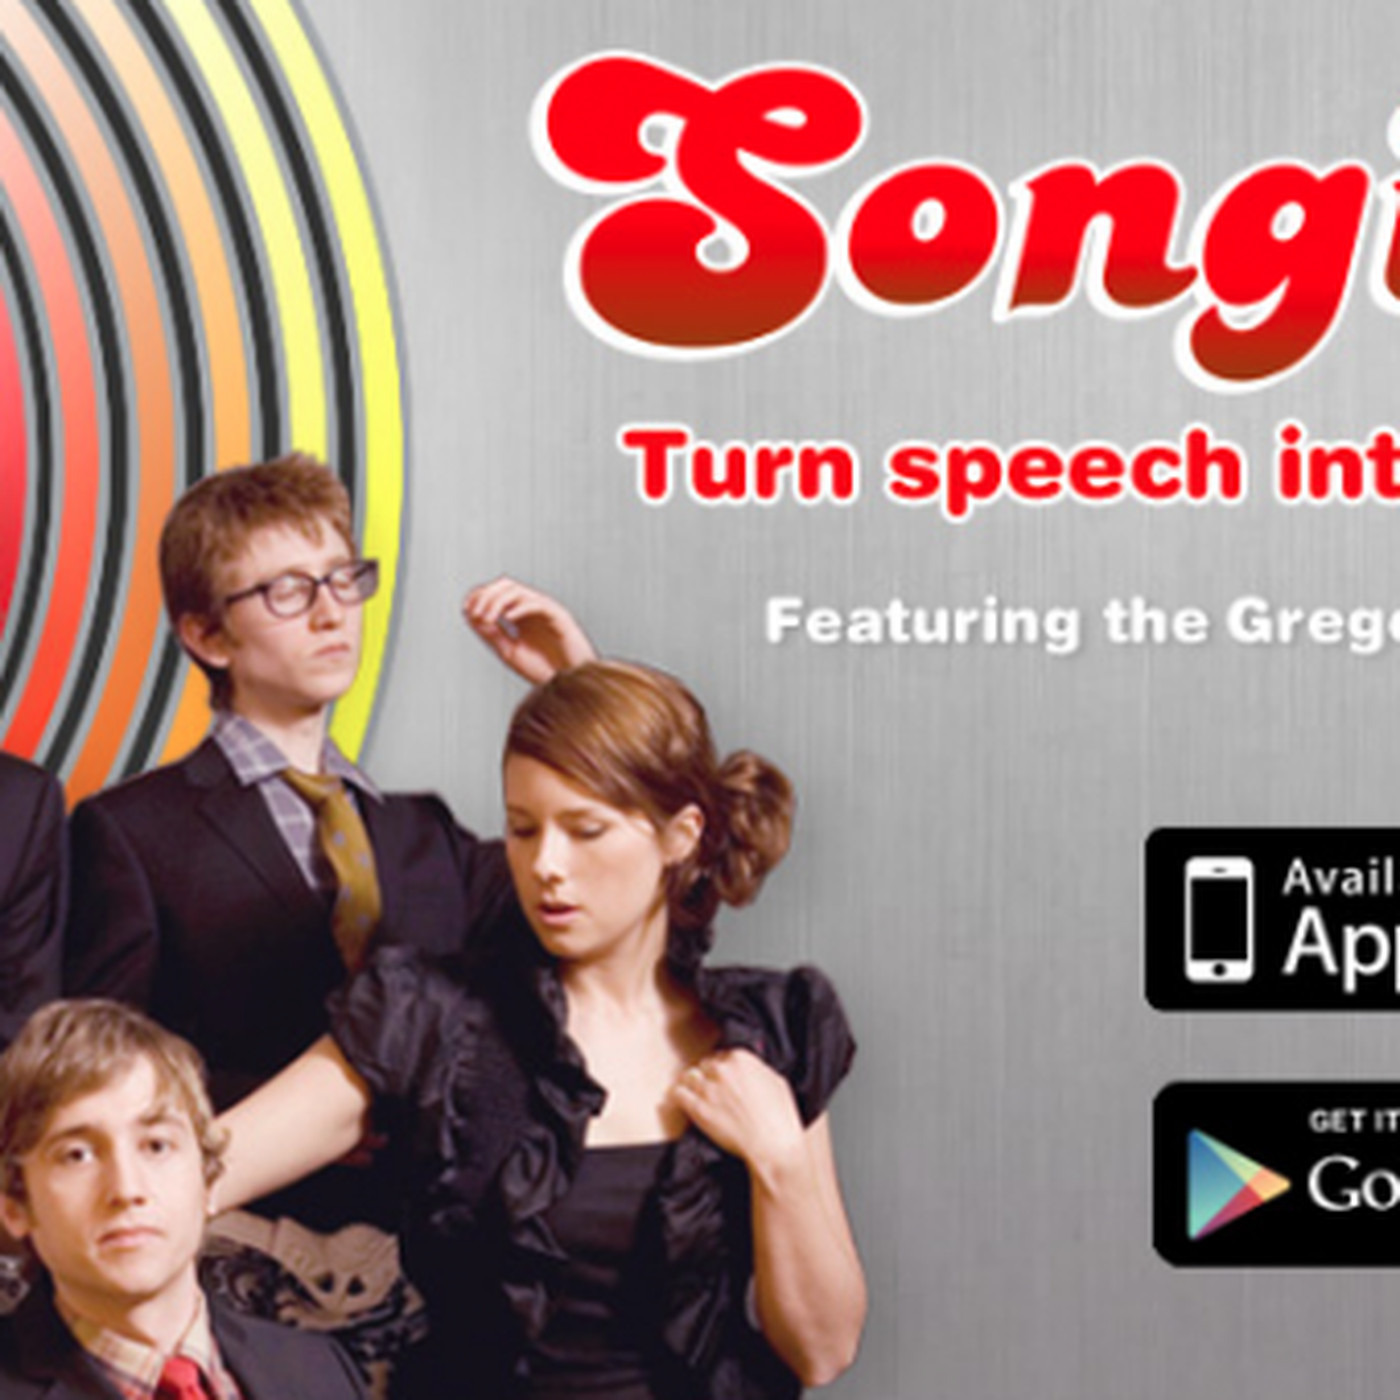 Auto-tune app Songify follows Instagram to Android, more